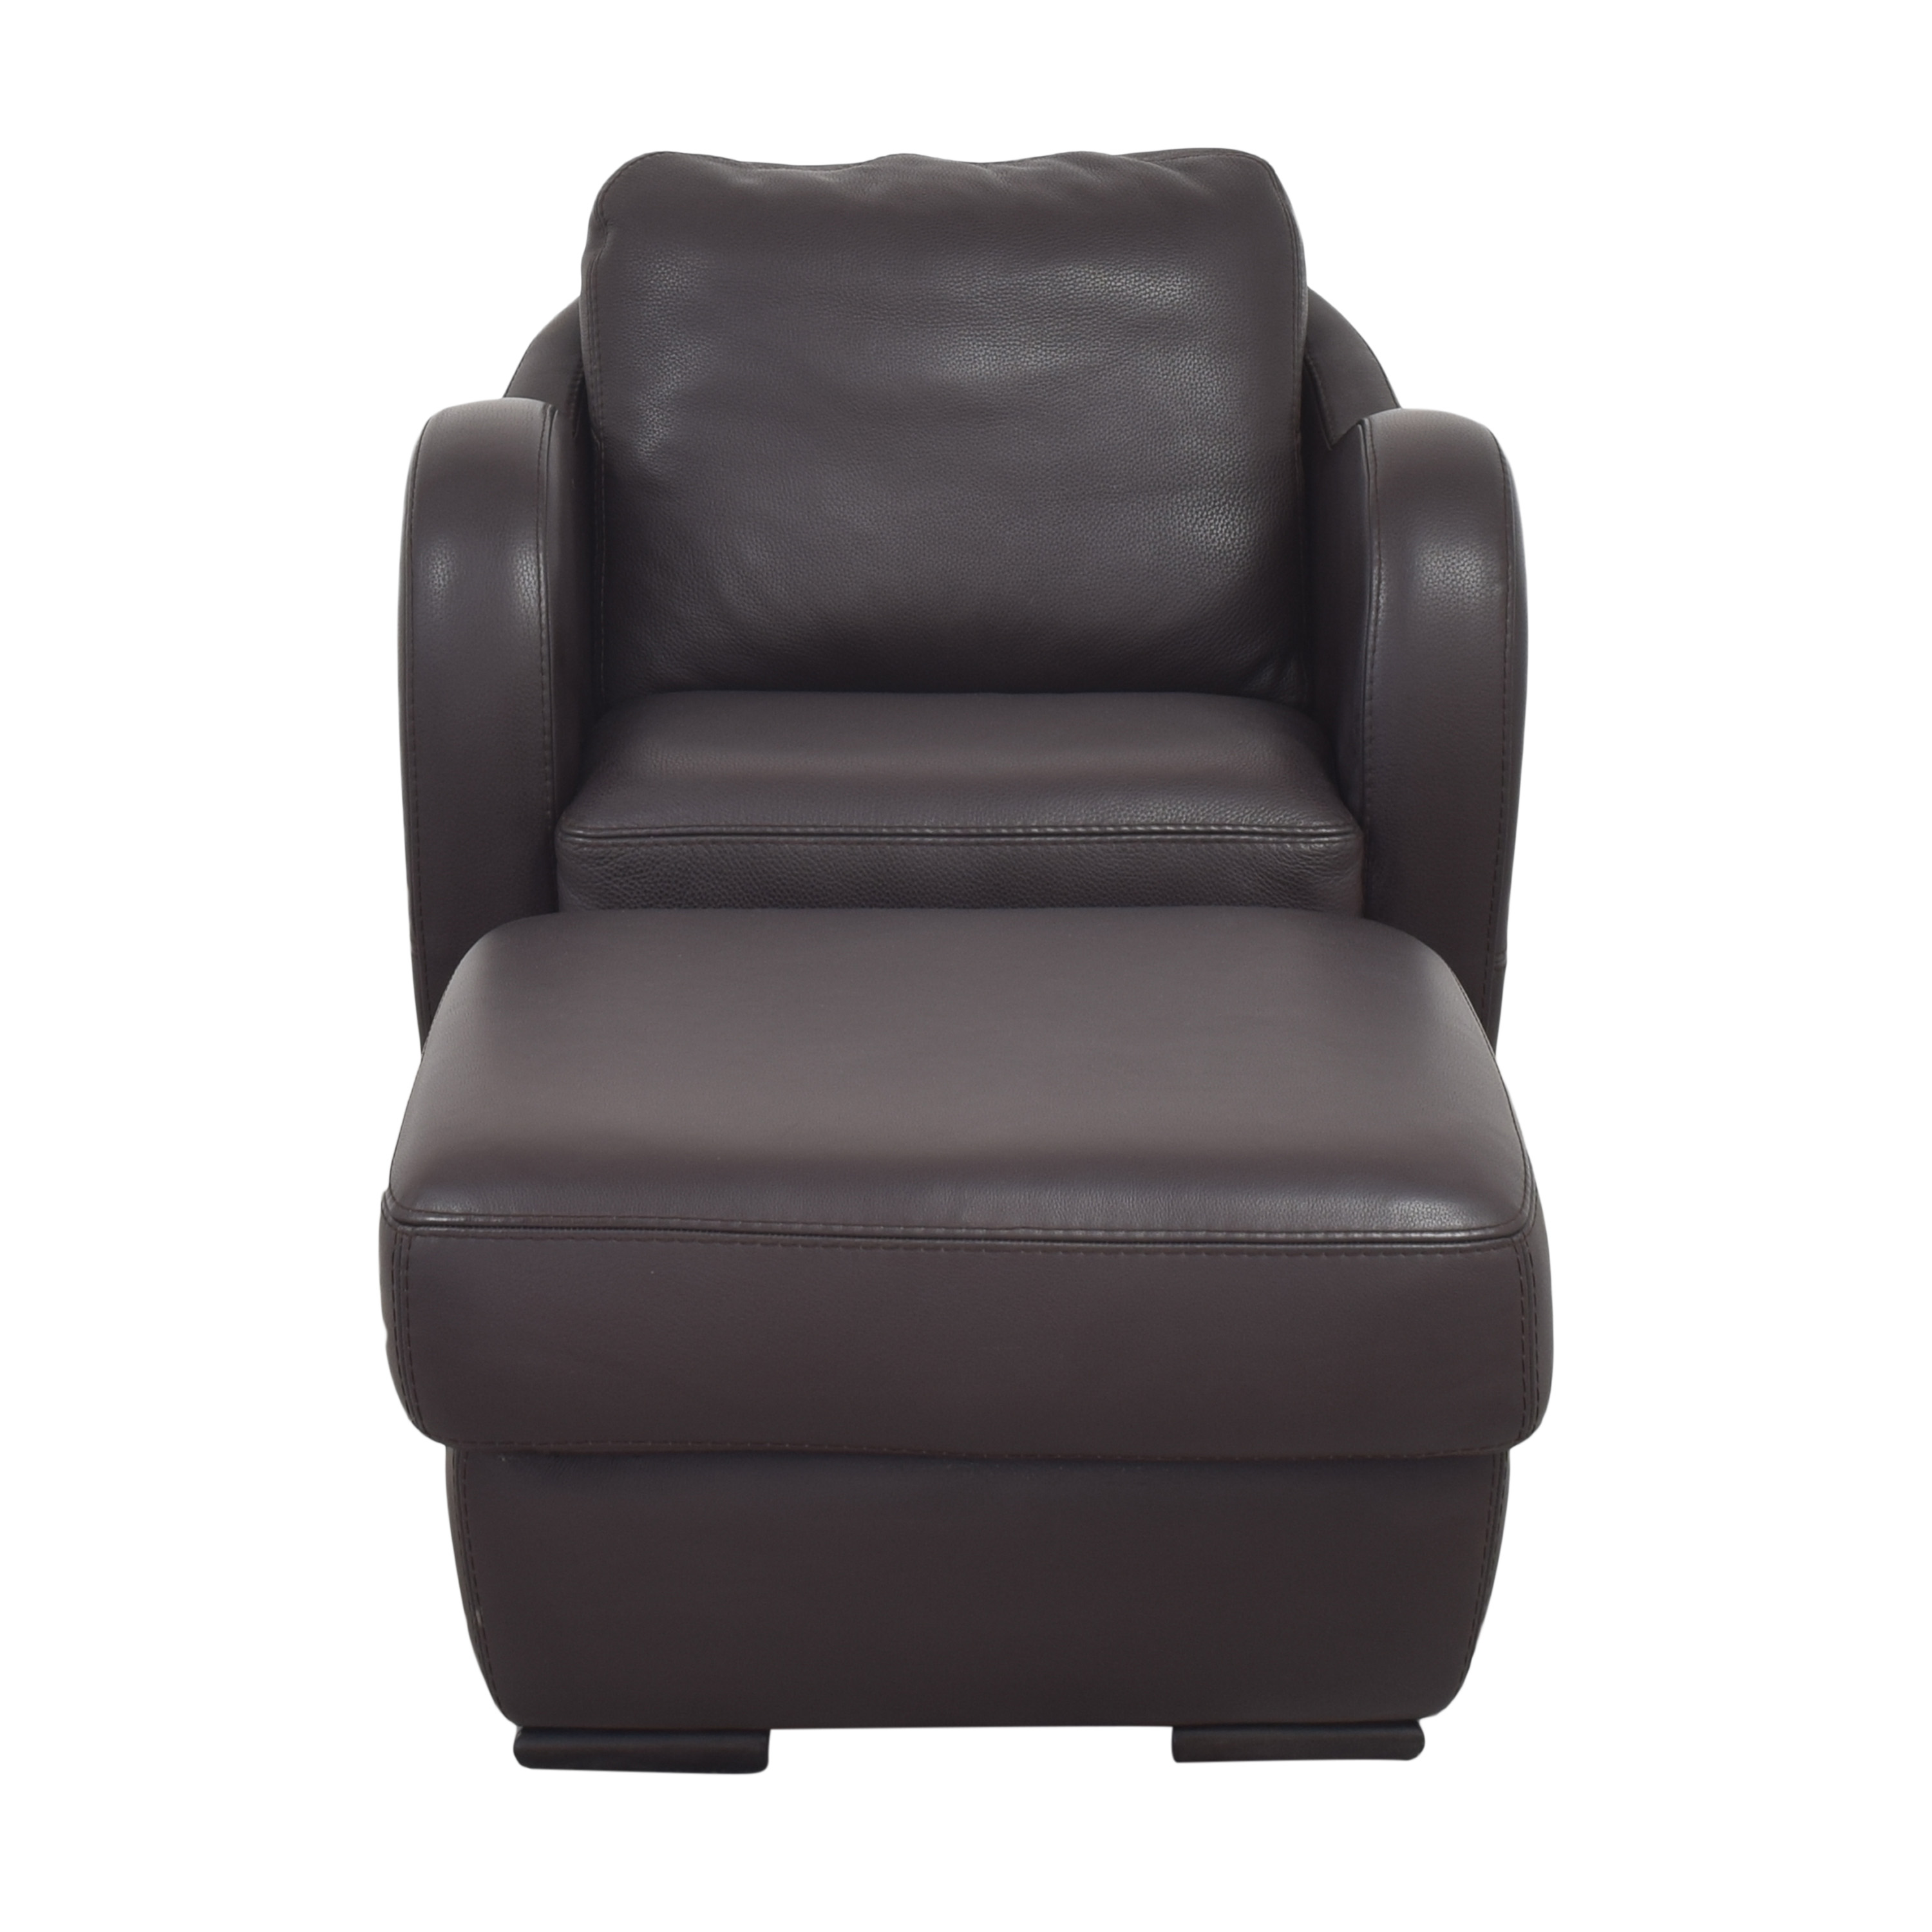 Maurice Villency Maurice Villency Club Chair with Ottoman nyc